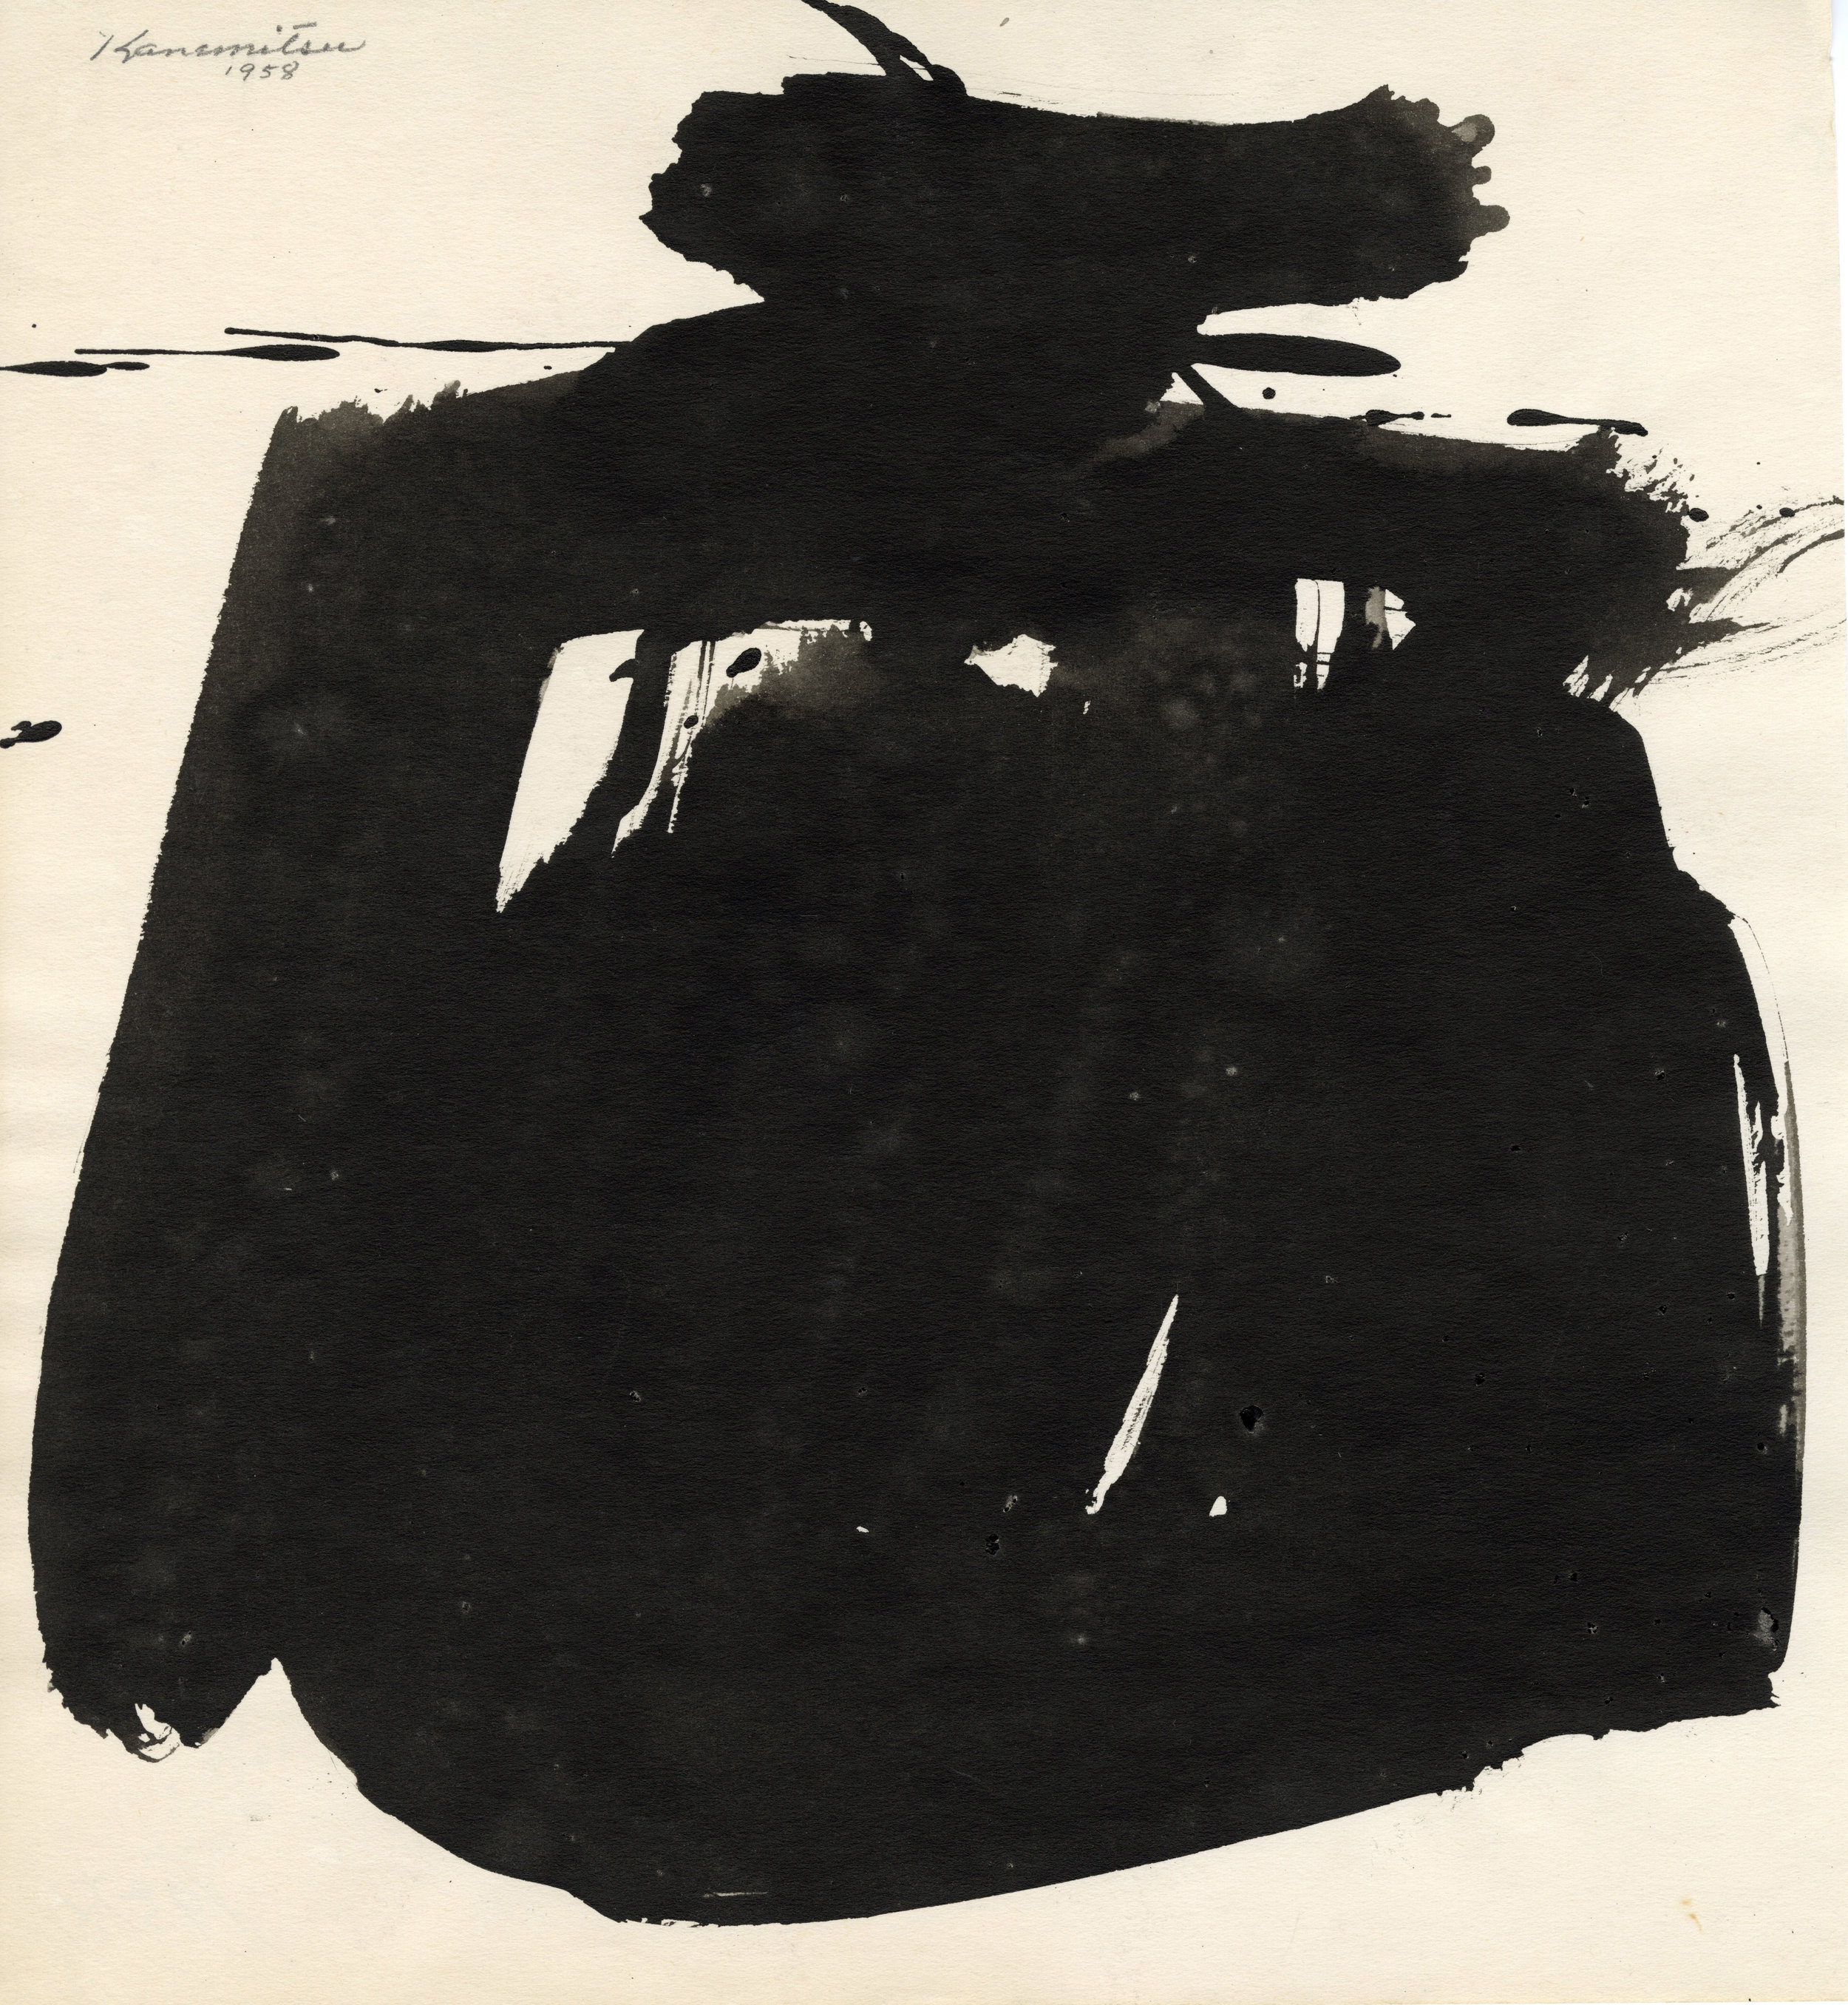 Untitled 2030 , 1958 sumi ink on paper 11 x 10 1/4 inches; 27.9 x 26 centimeters